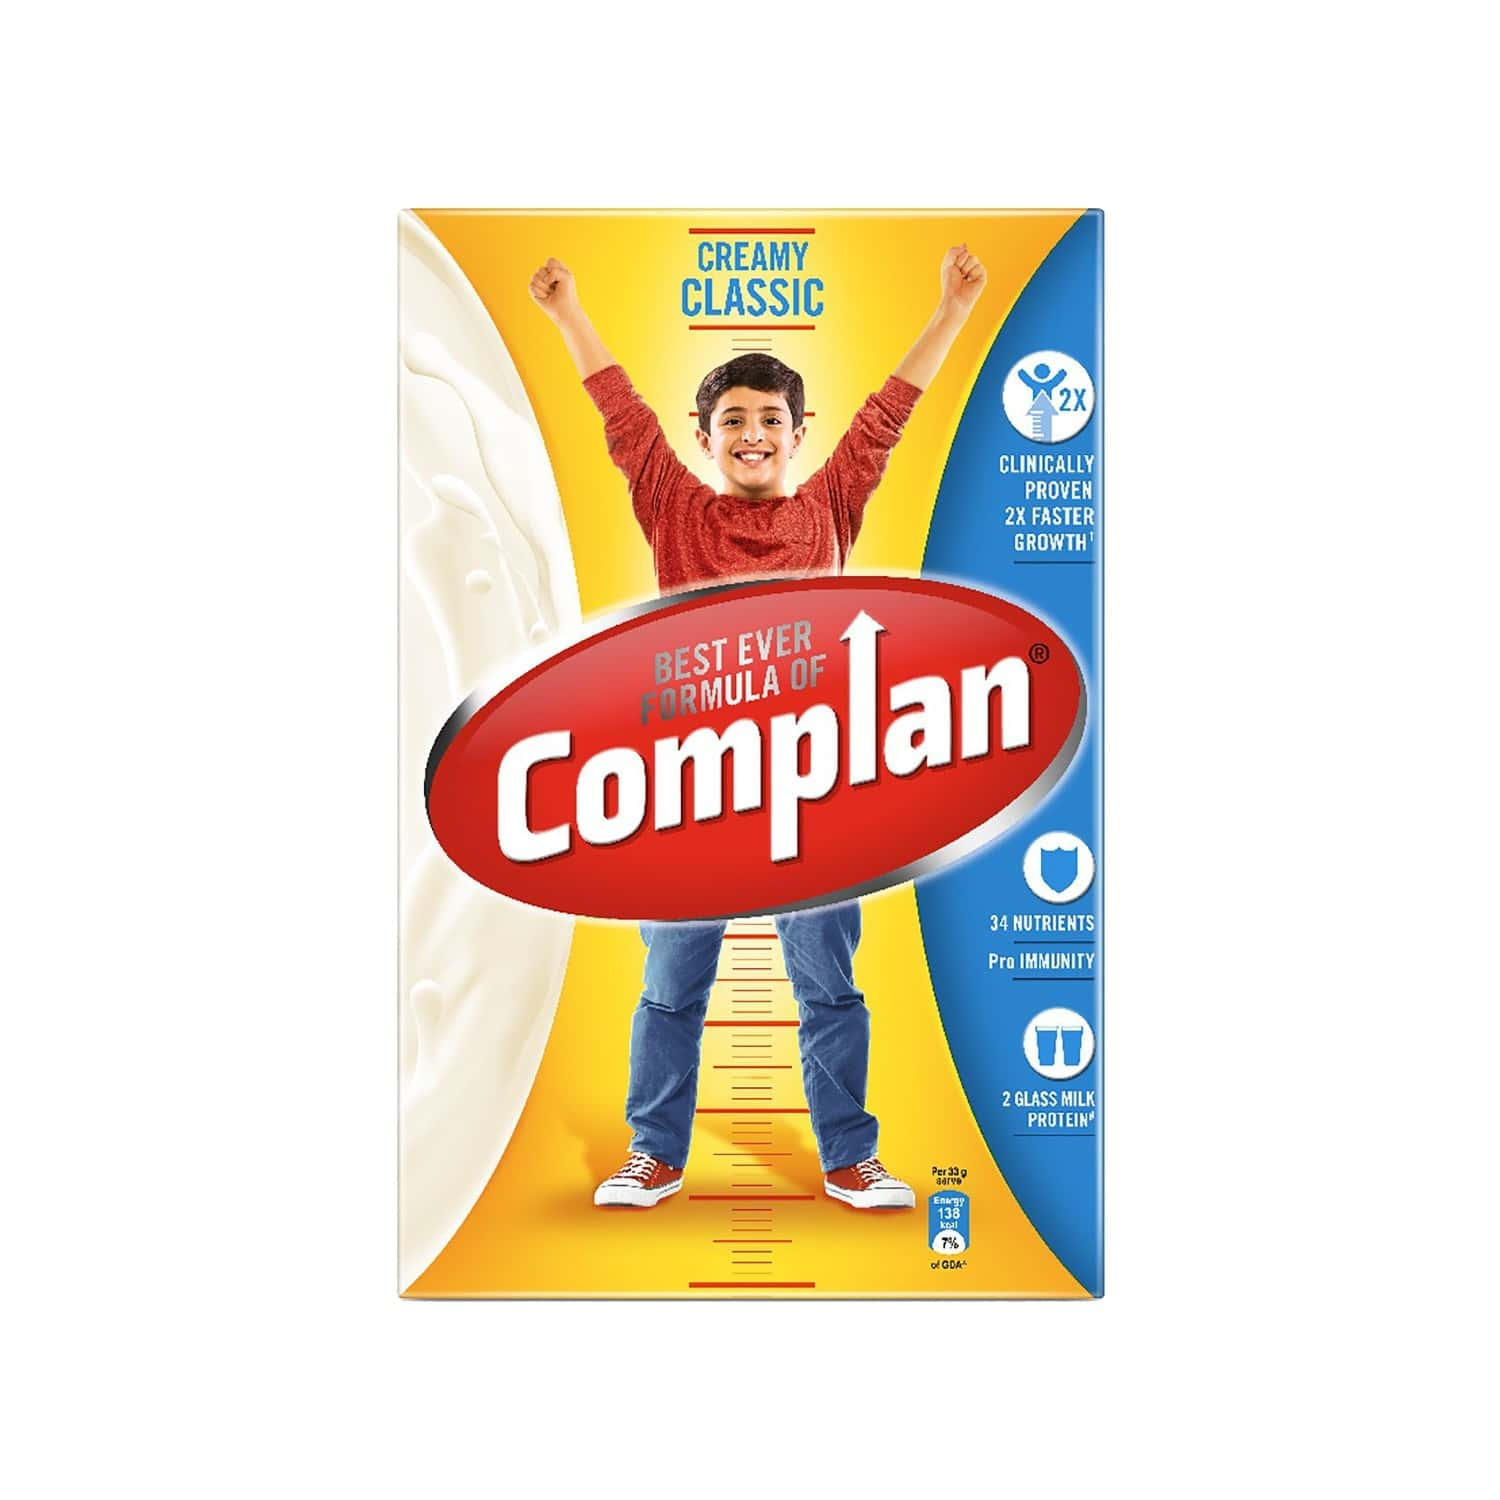 Complan Creamy Classic Nutrition Drink Refill Of 500 G